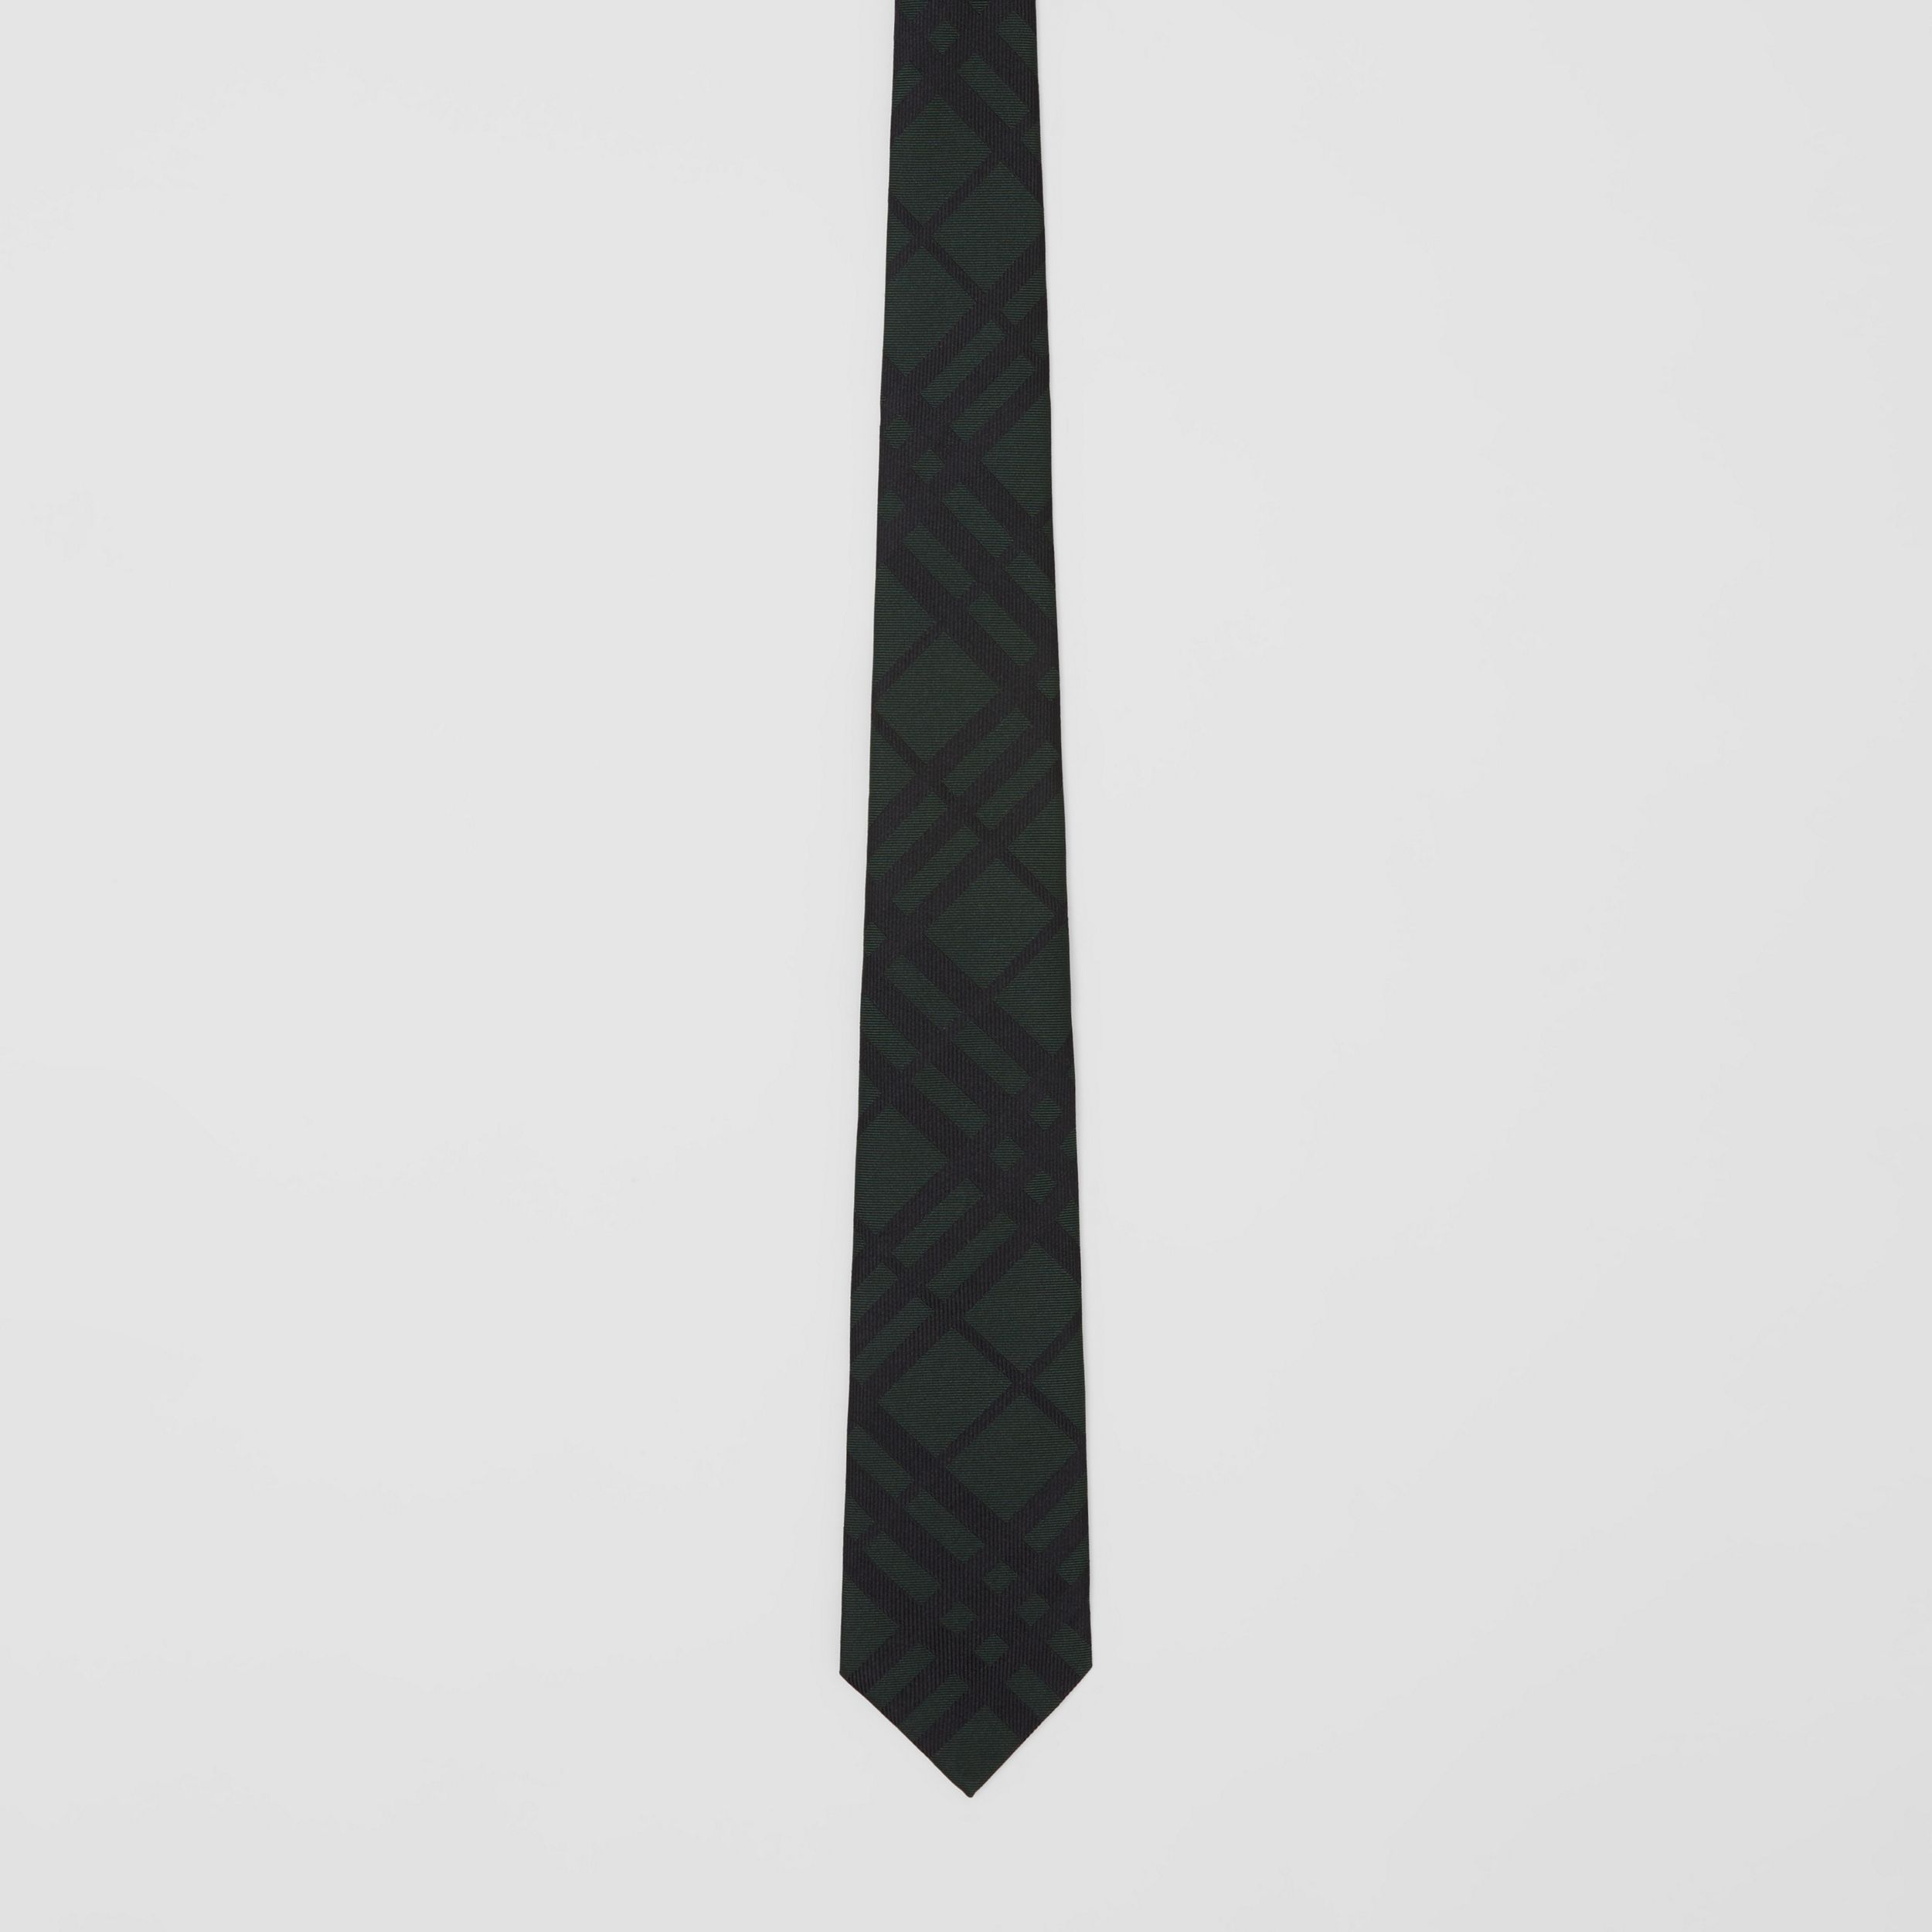 Classic Cut Check Silk Jacquard Tie in Dark Forest Green - Men | Burberry - 4